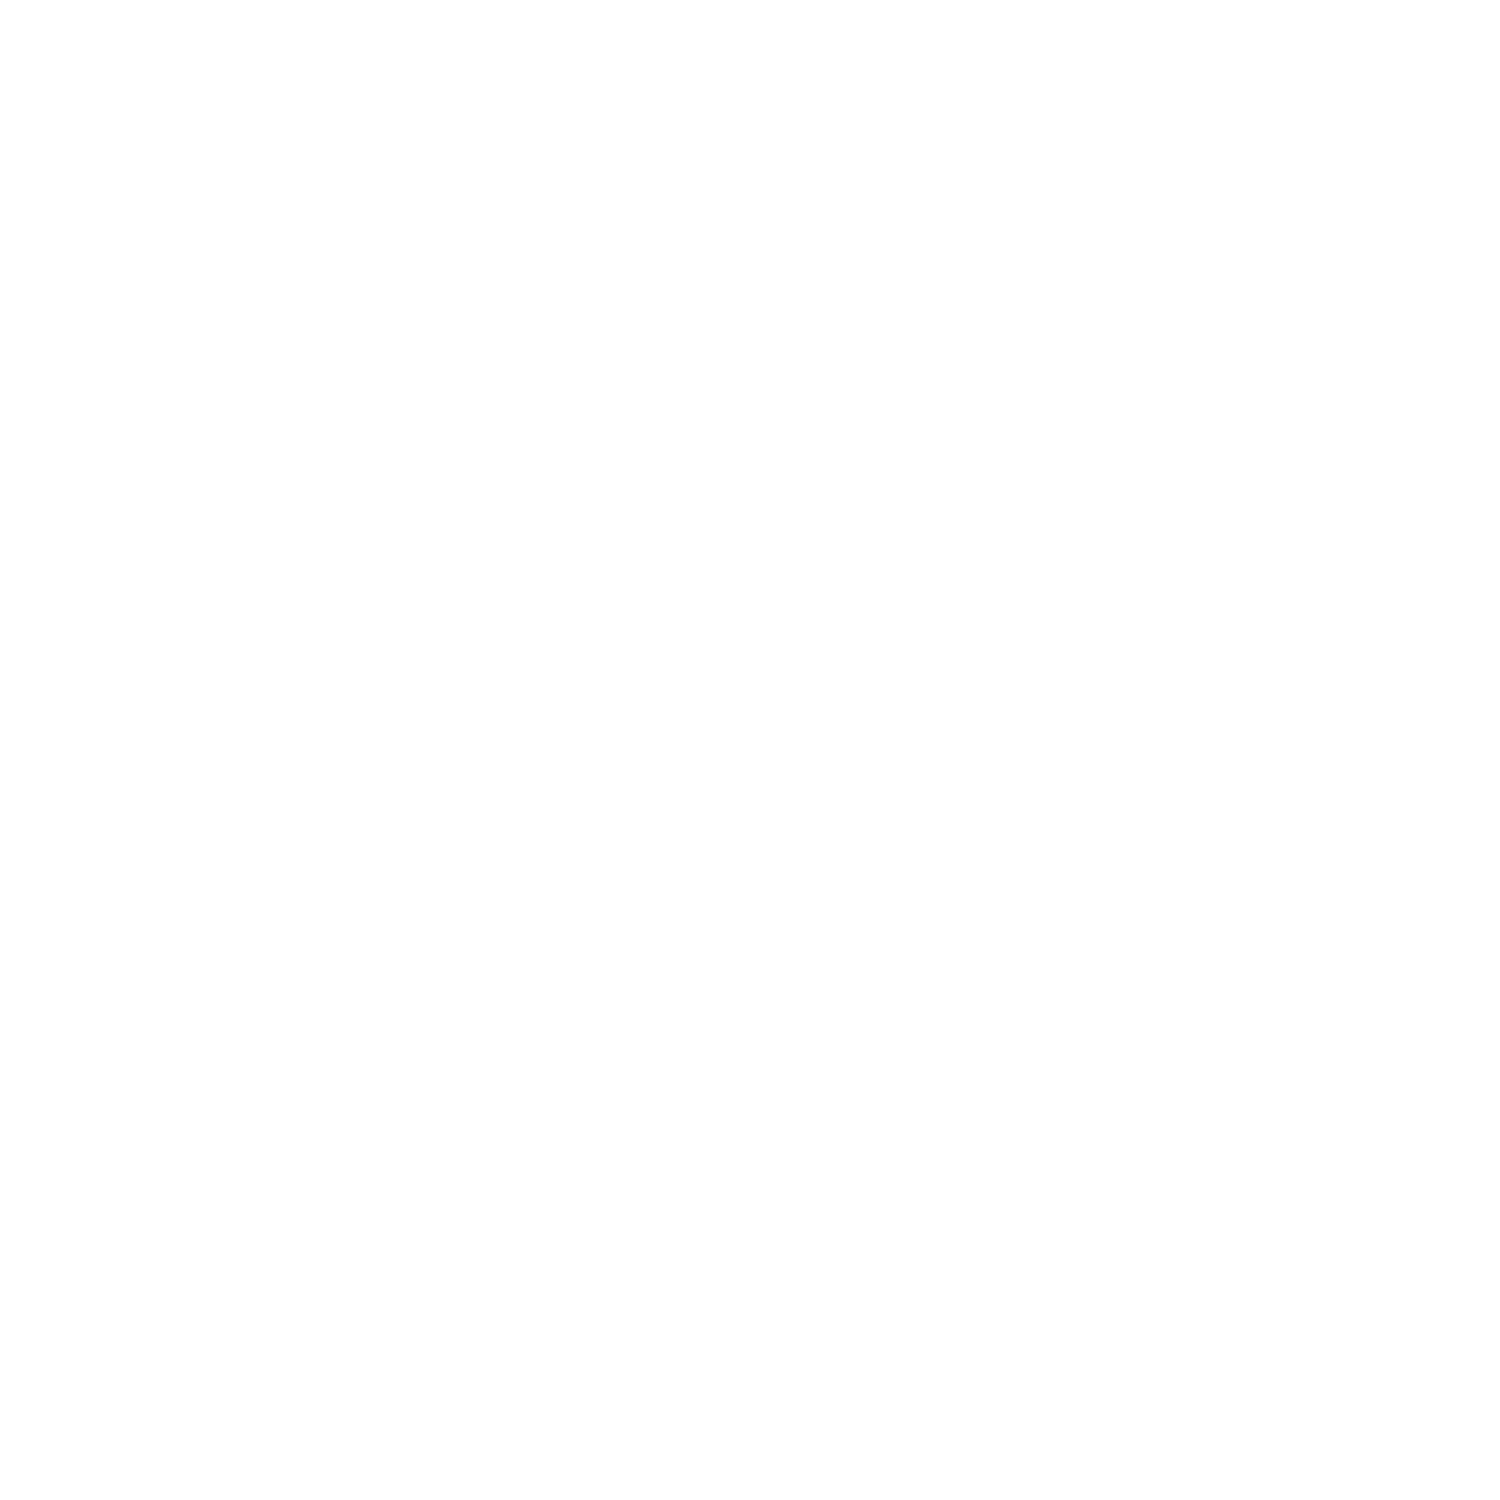 pacto-global-chile-sipp-00